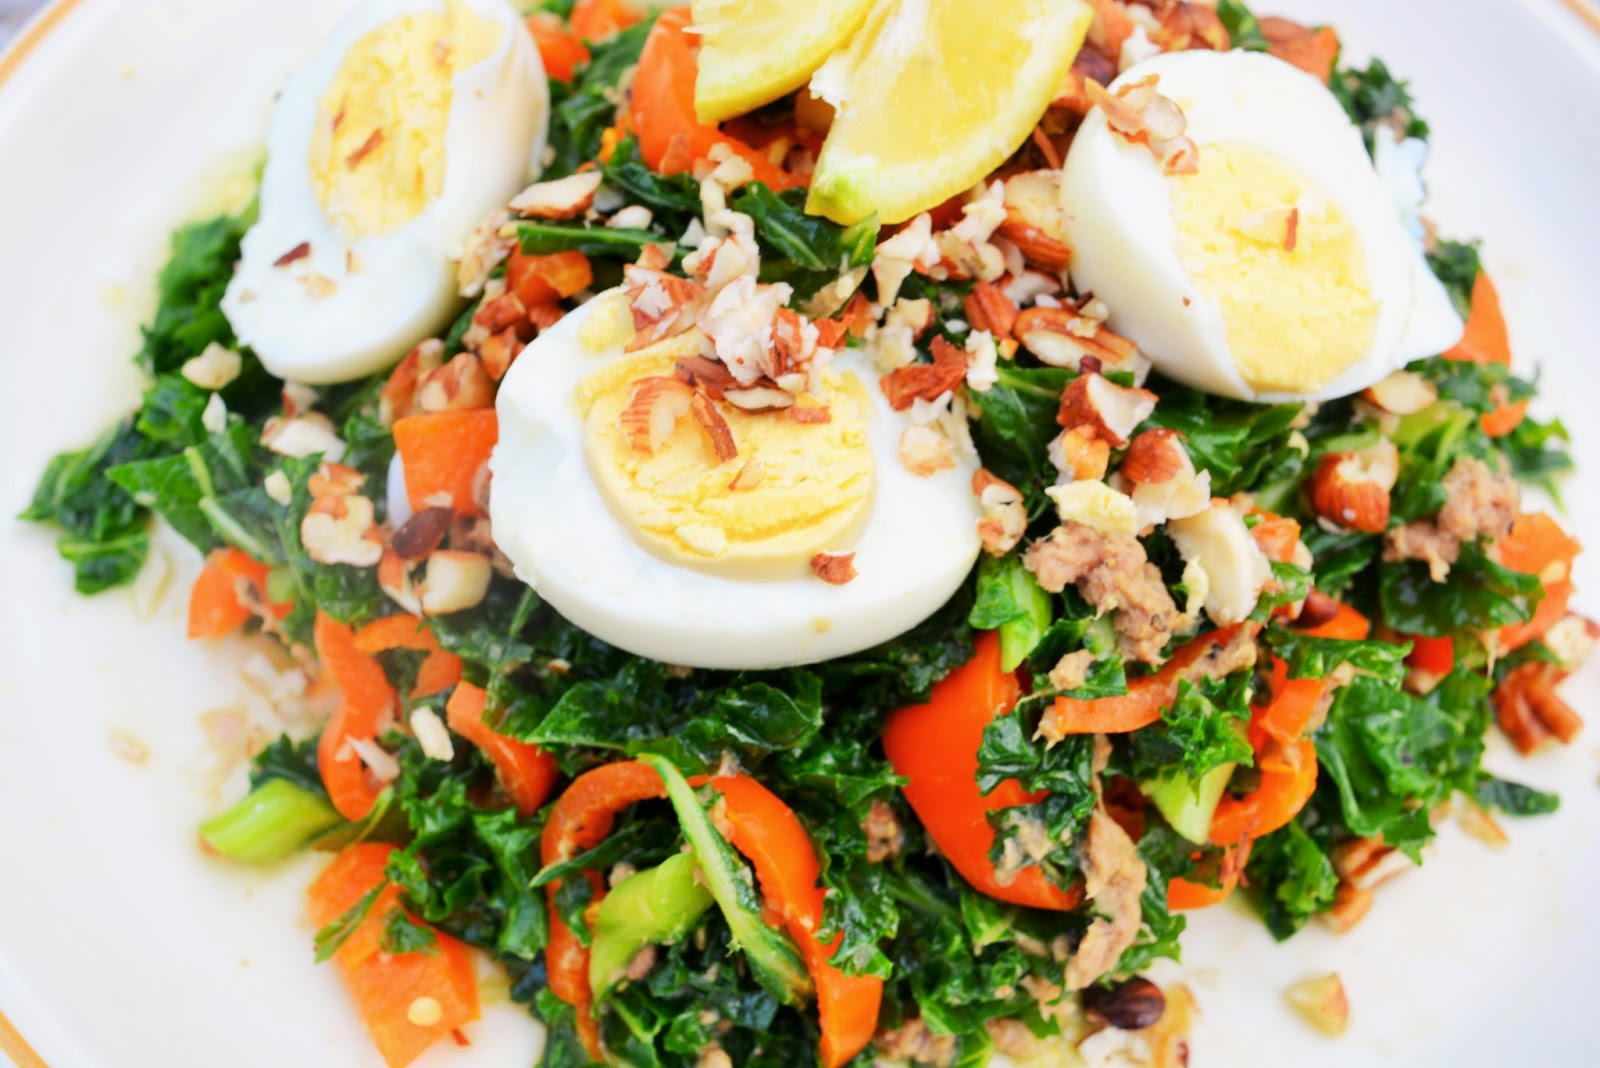 http://thoughtsofabumblemind.blogspot.co.uk/2014/06/cookbook-raw-kale-and-tuna-summer-salad.html